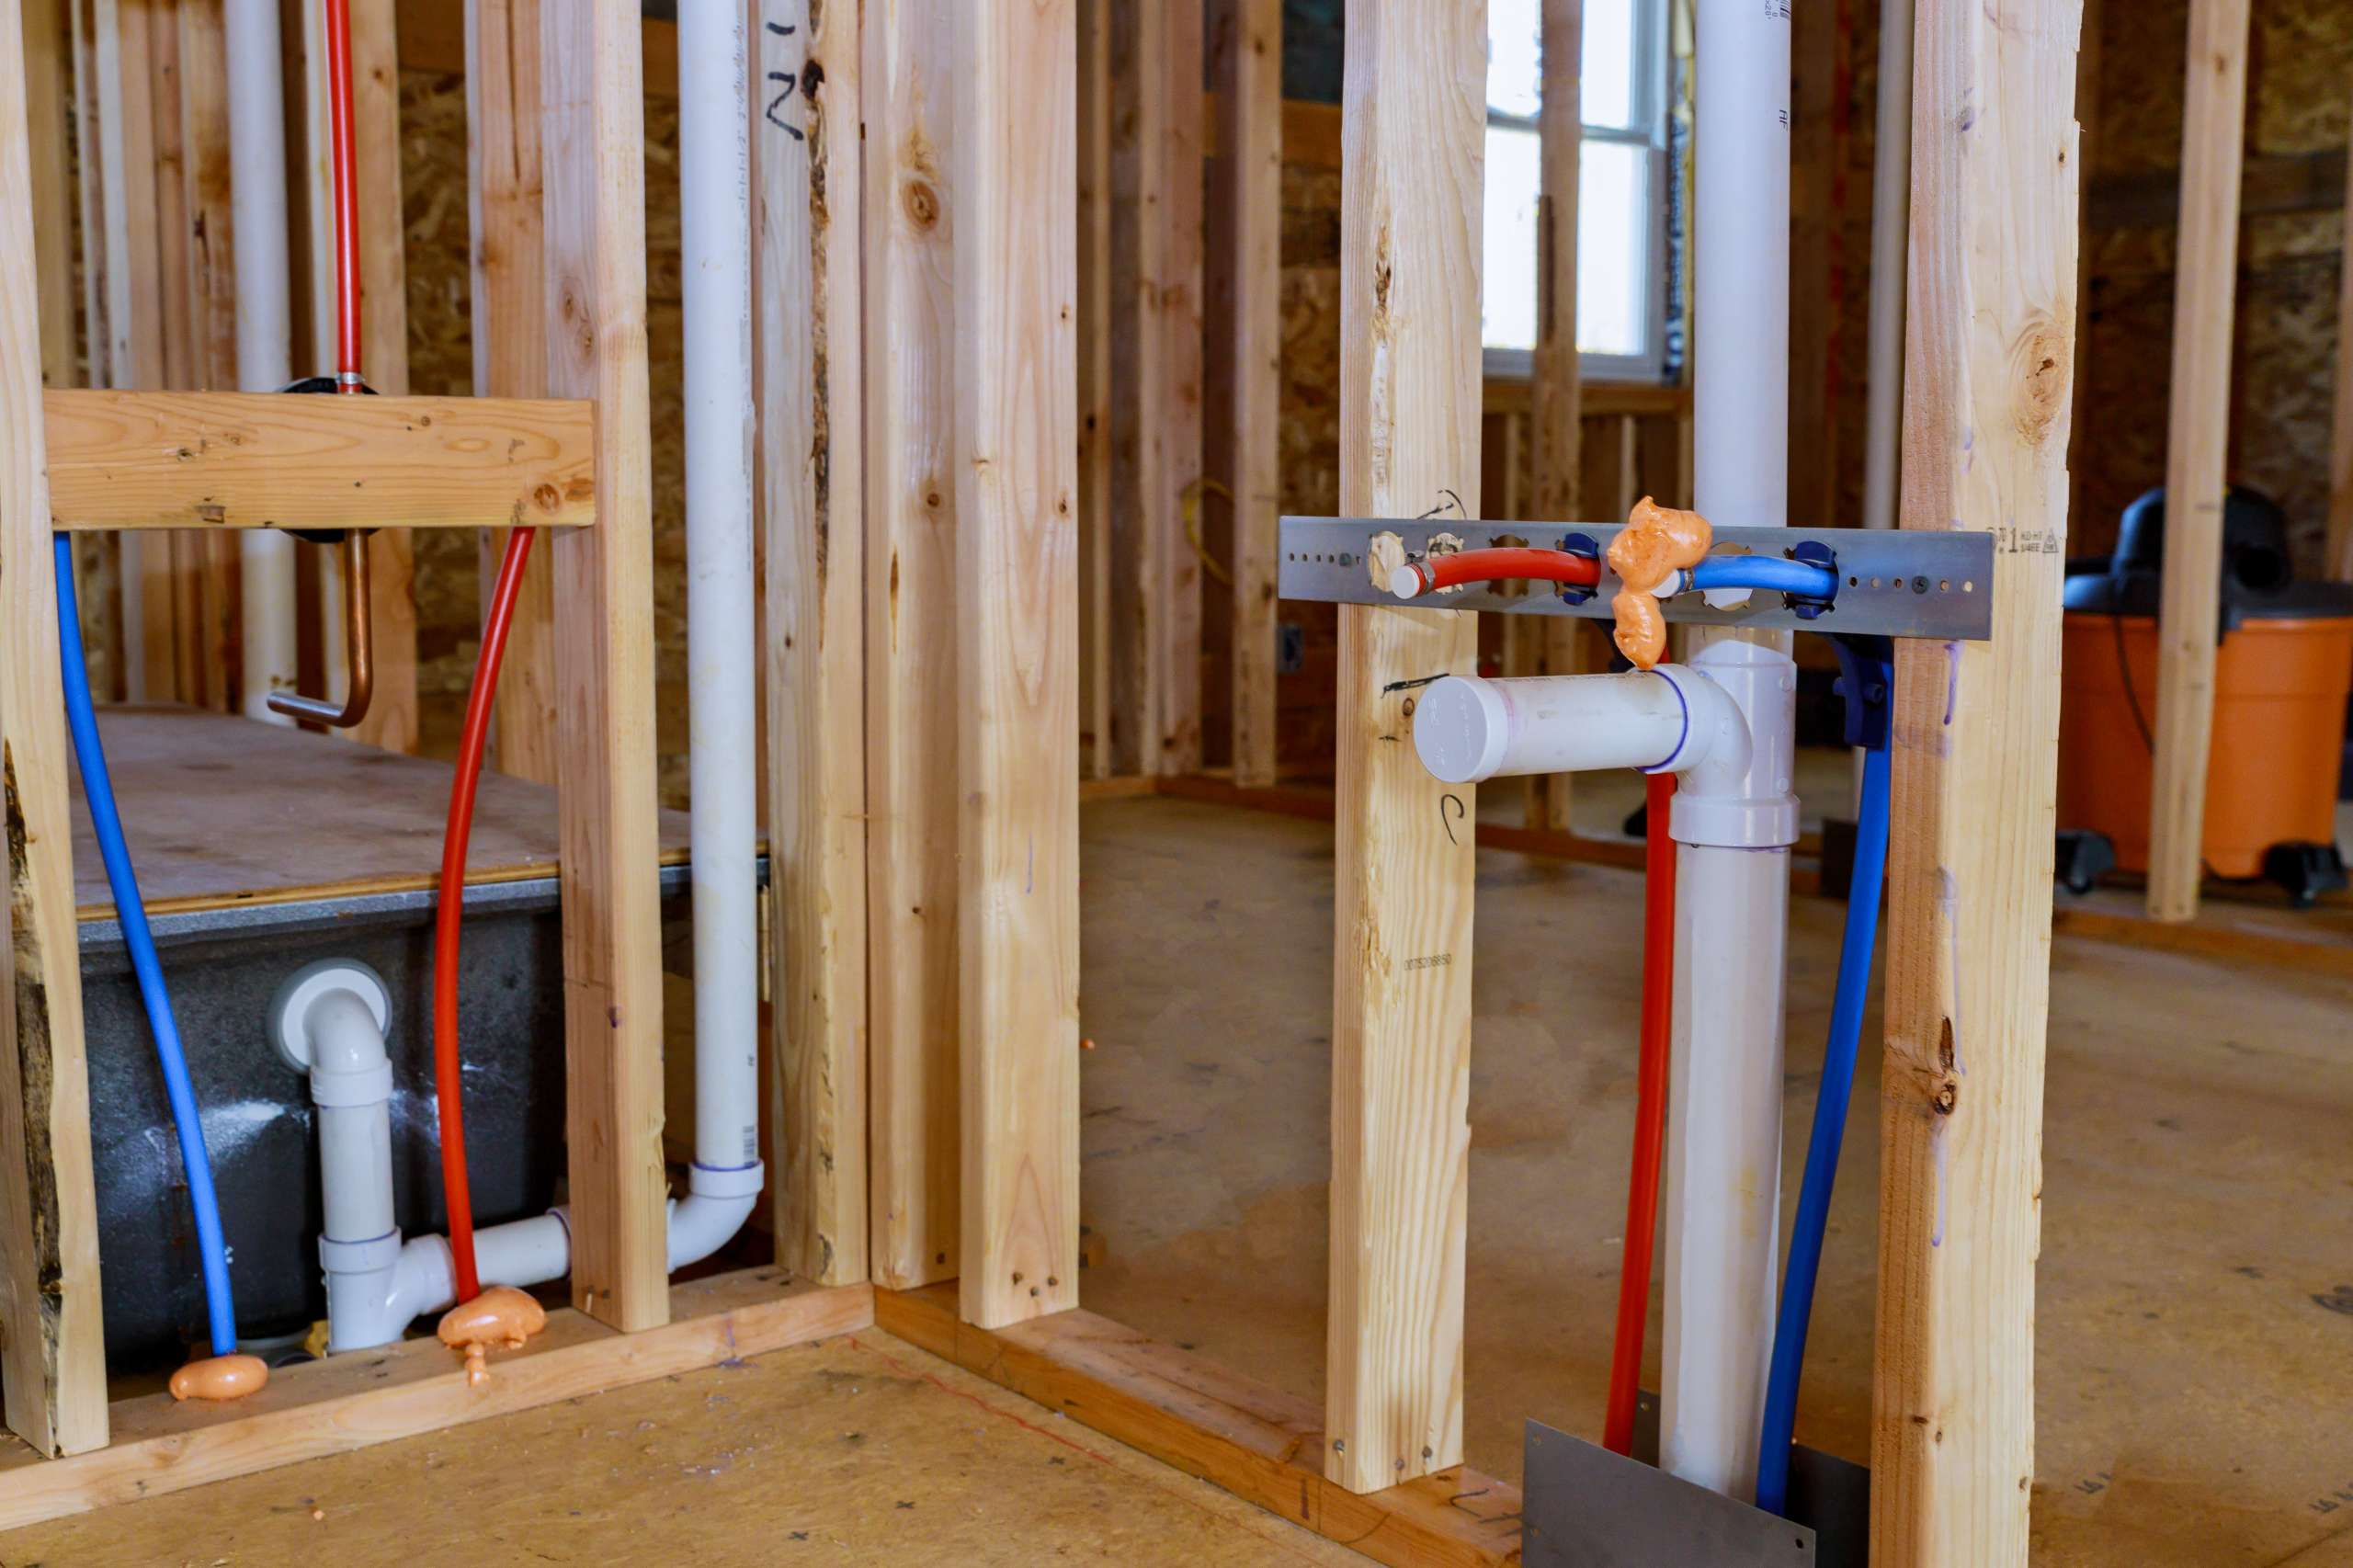 Install Electrical, Rough Plumbing, and Insulation